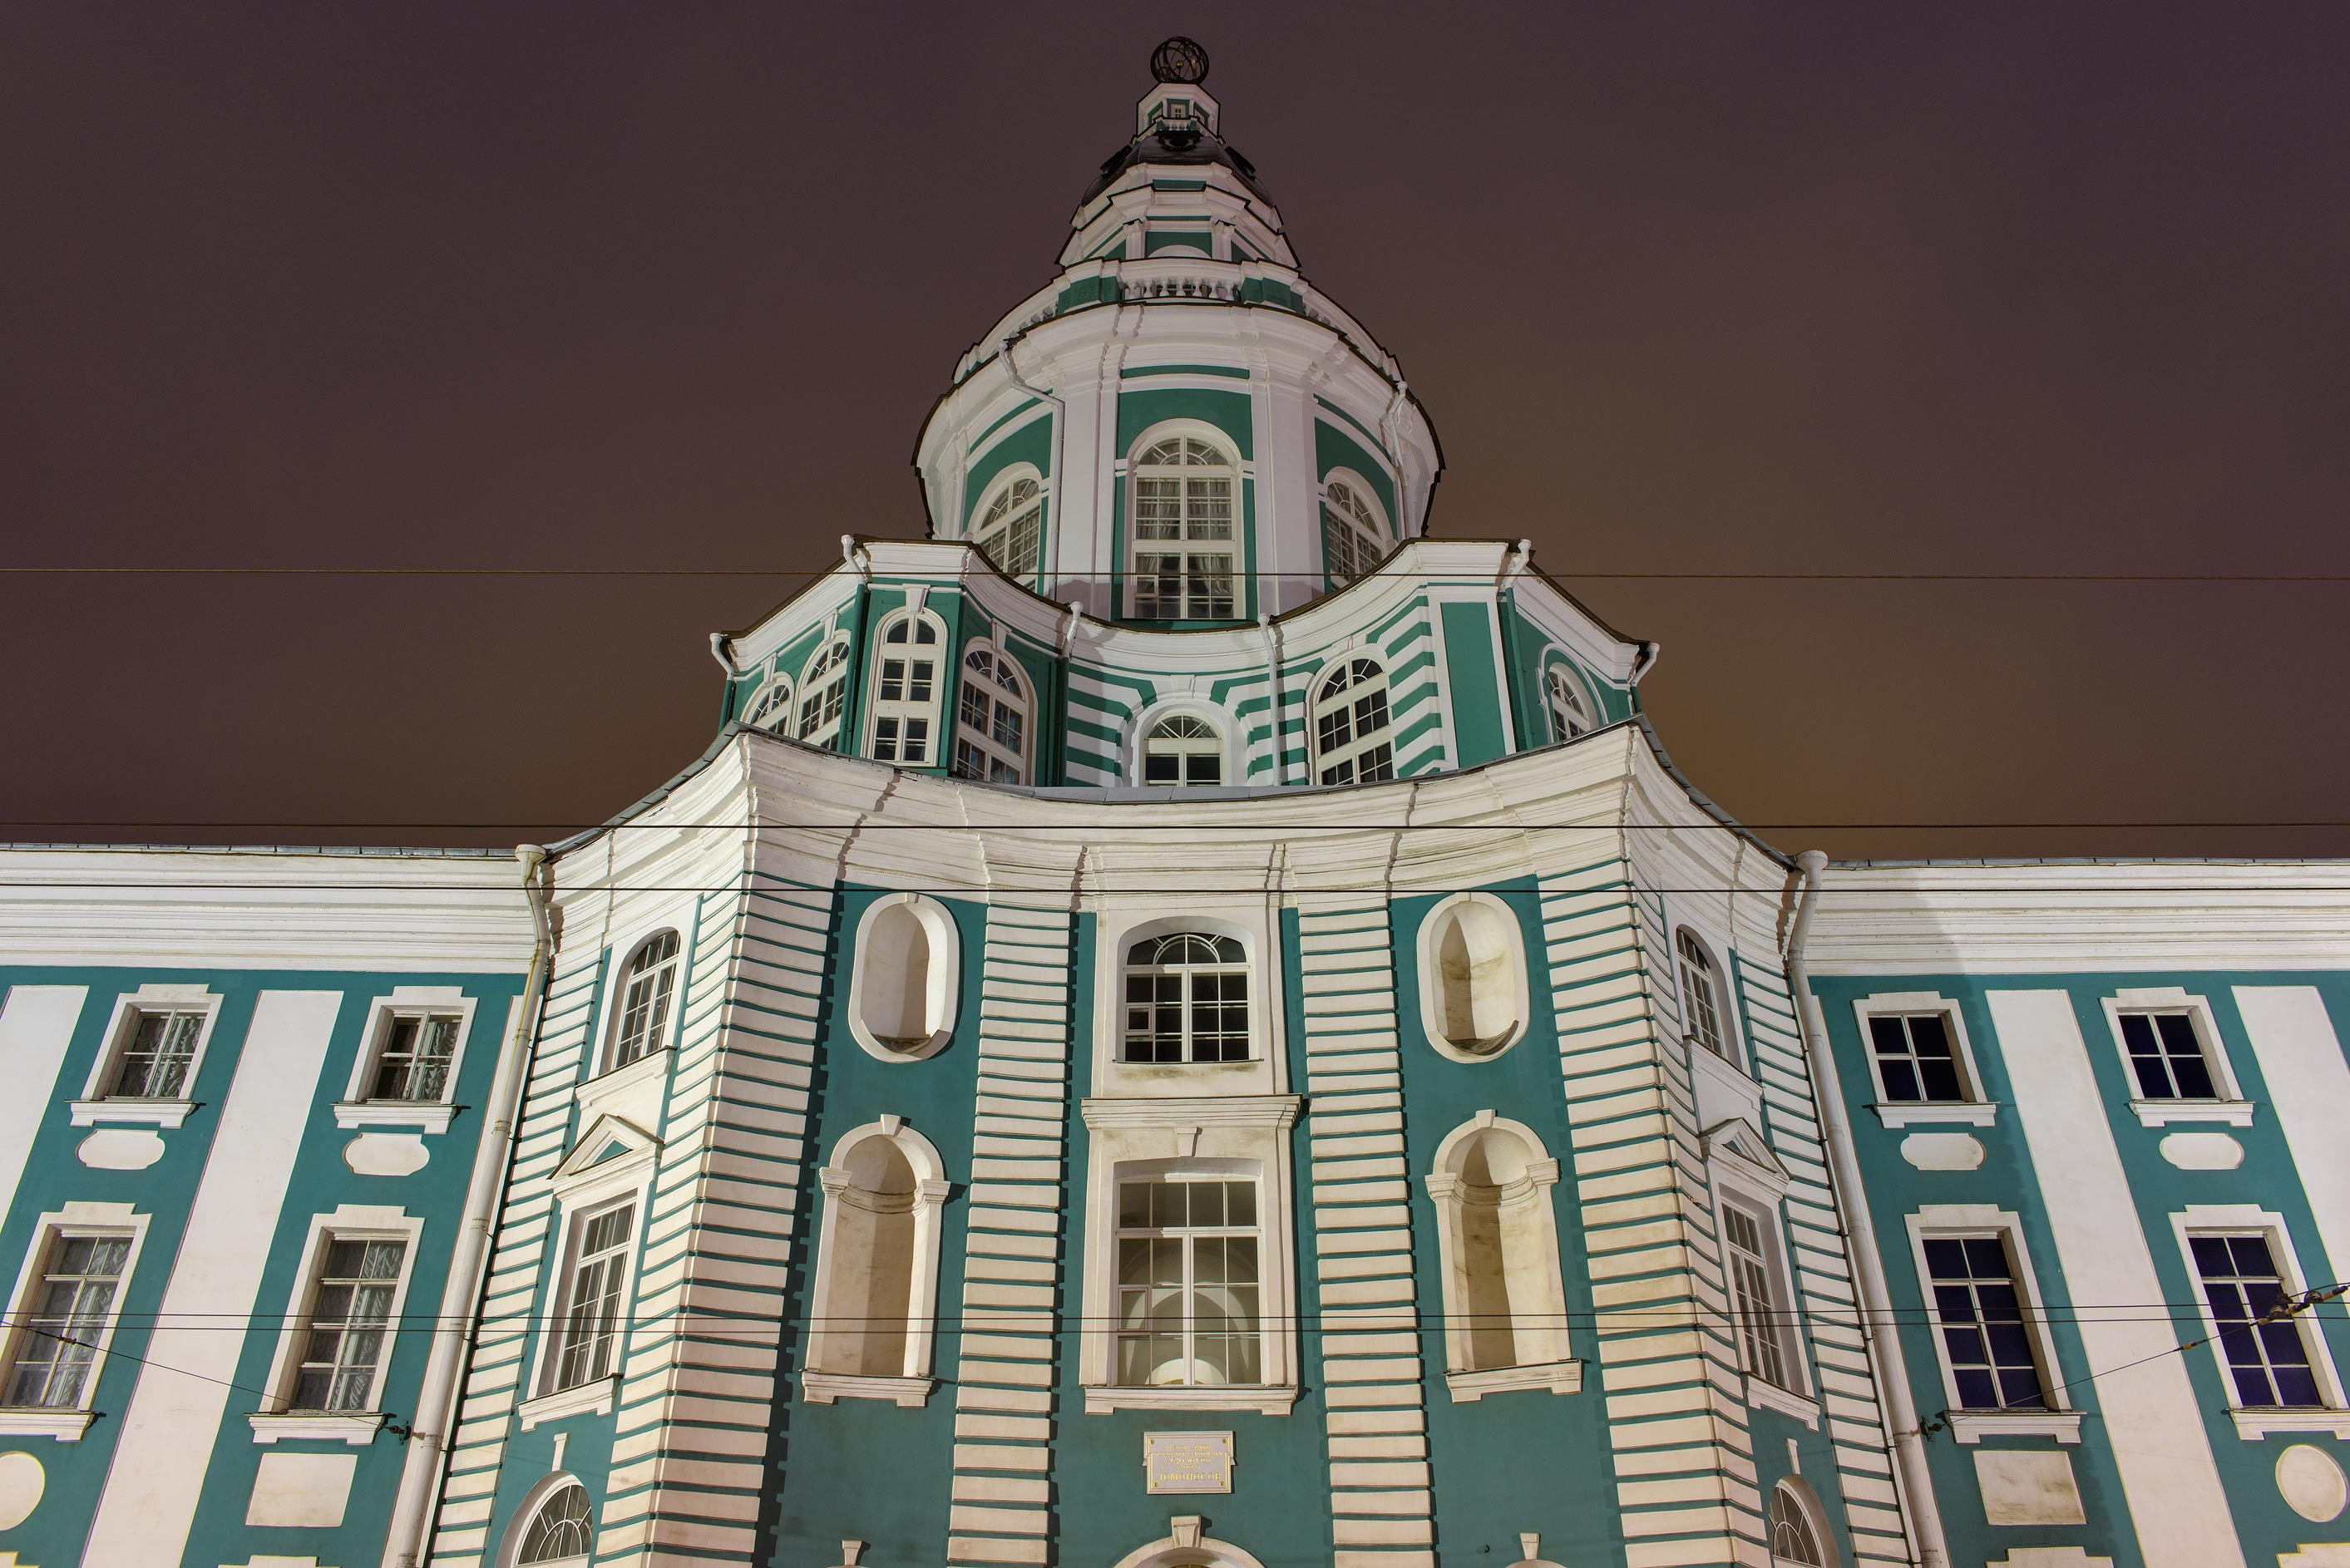 Kunstcamera at 3 Universitetskaya Embankment of Vasilievsky Island. St.Petersburg, Russia